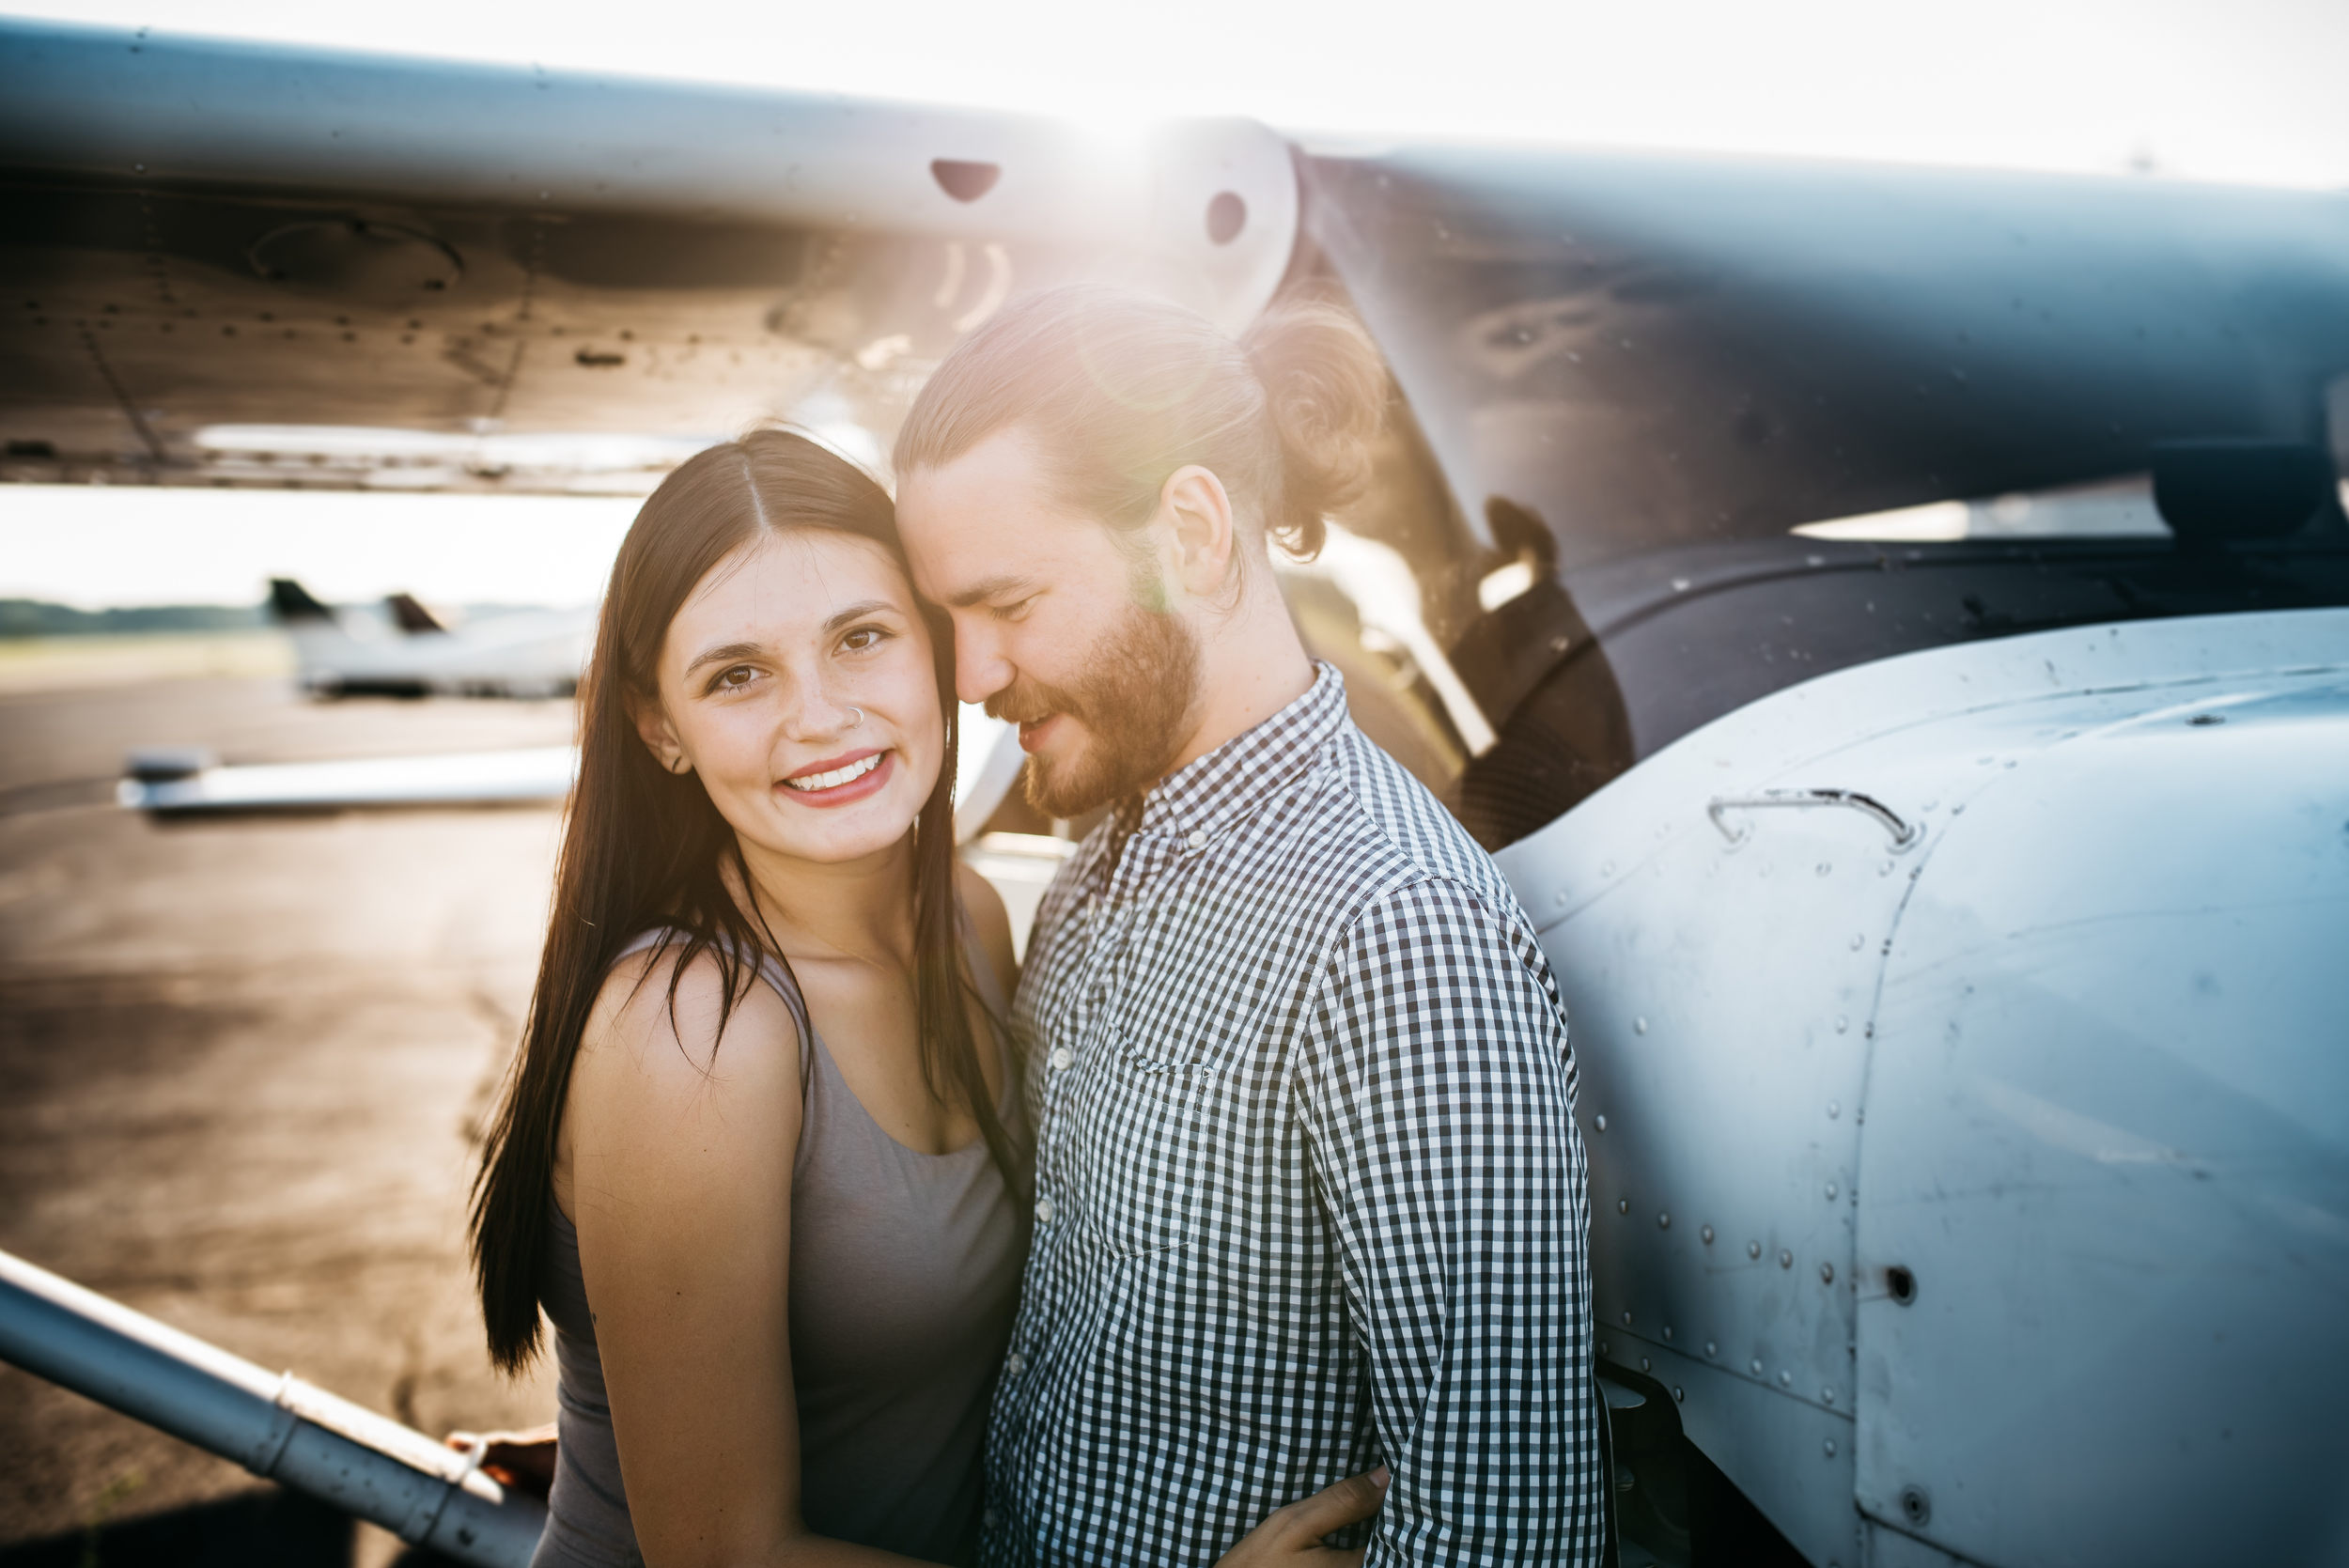 Pittsburgh_airplane_engagement_session048.jpg